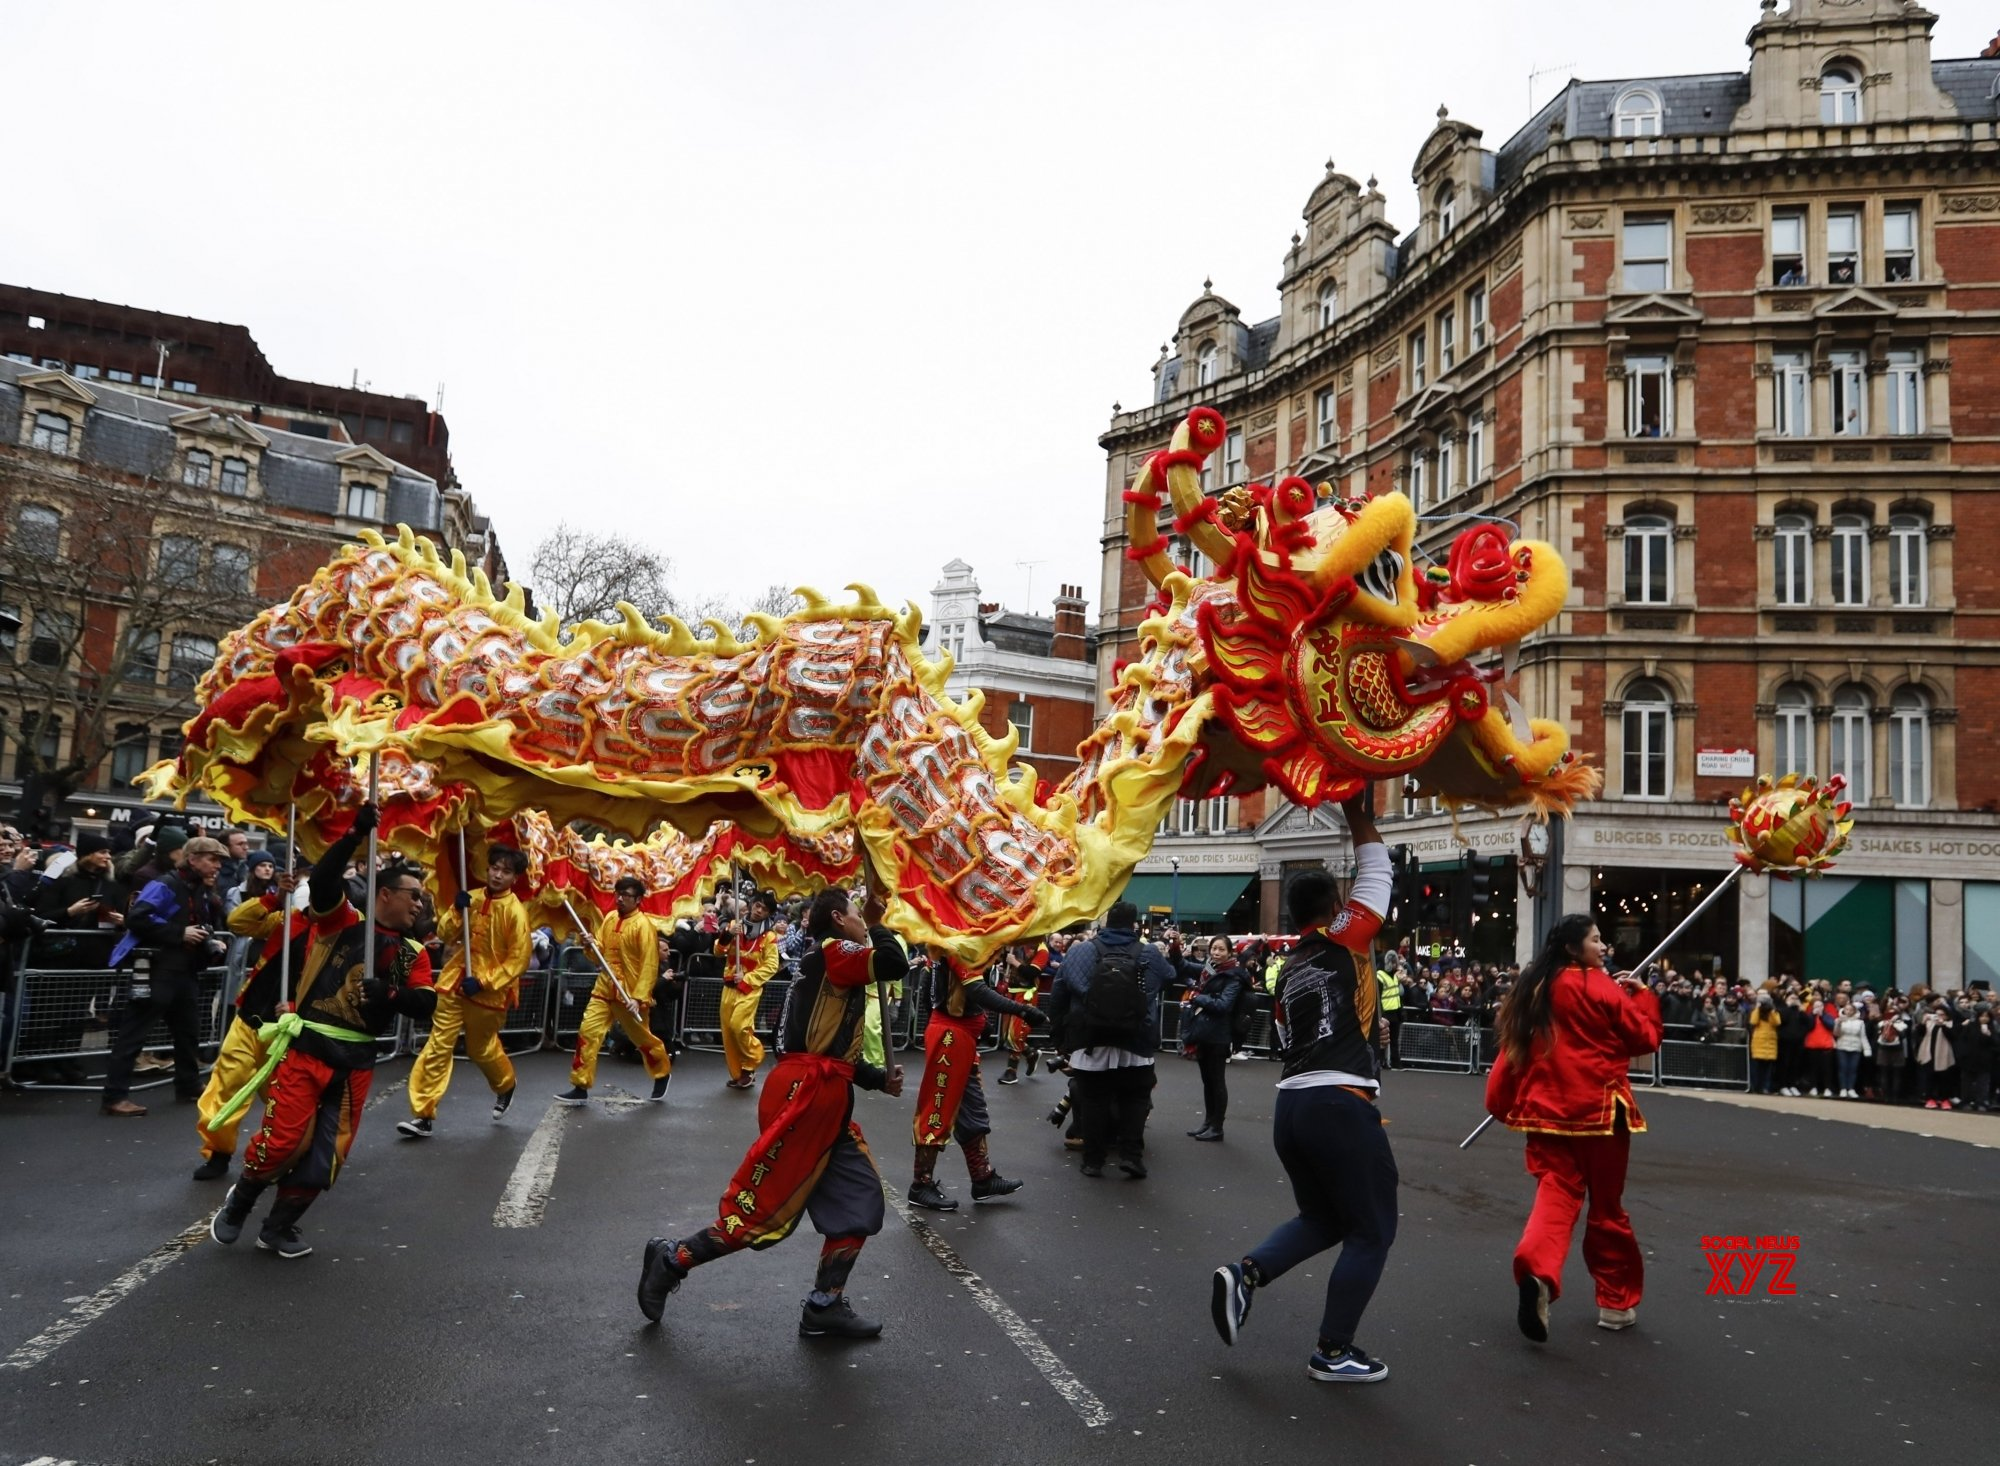 BRITAIN - LONDON - CHINESE LUNAR NEW YEAR - CELEBRATION #Gallery